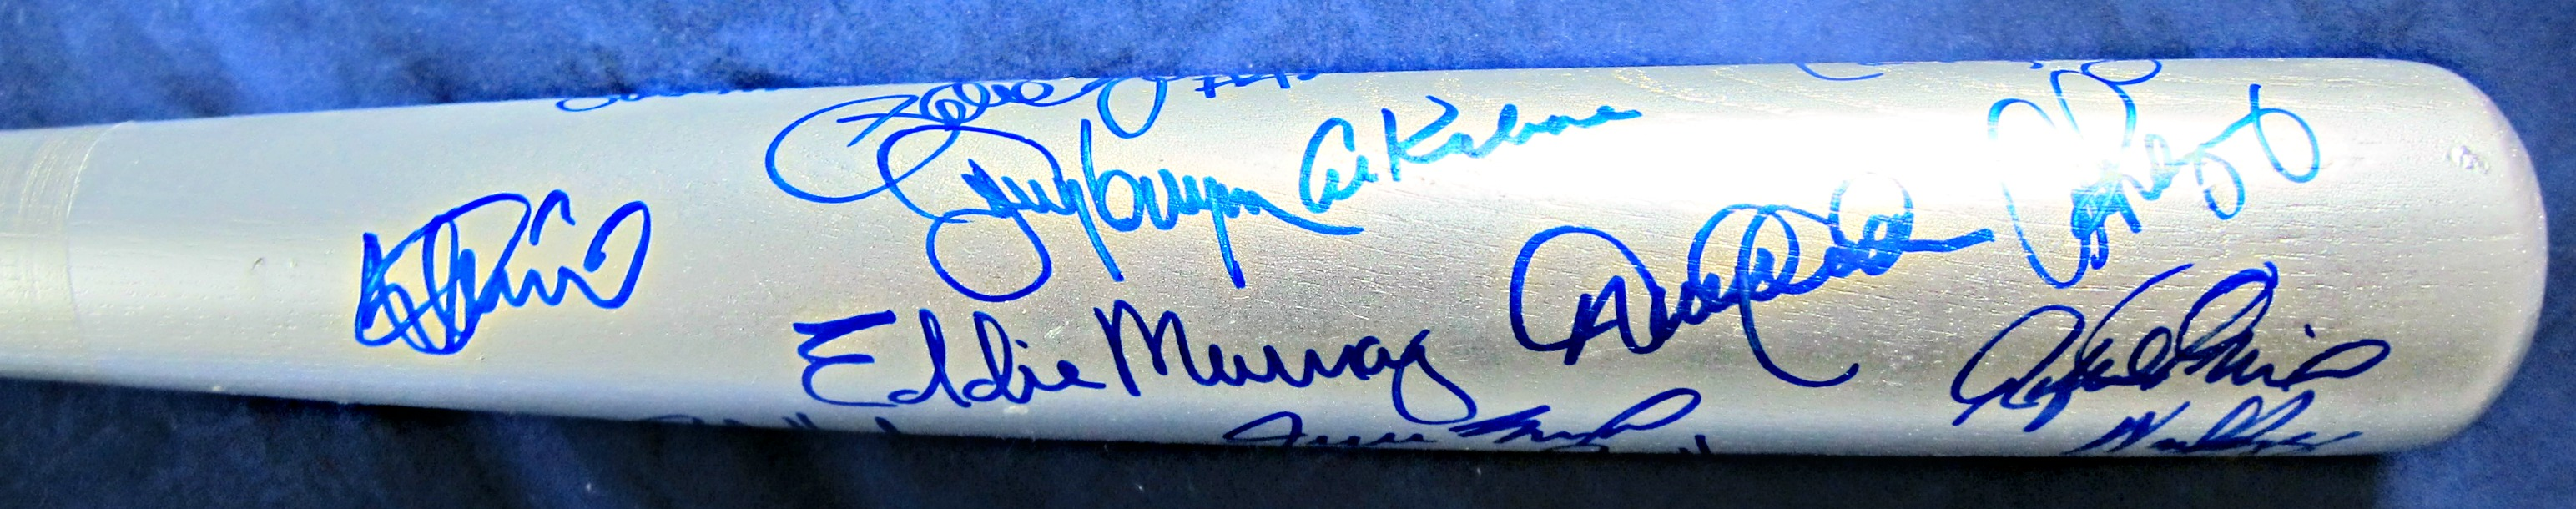 3000 Hit Club Signed Bat